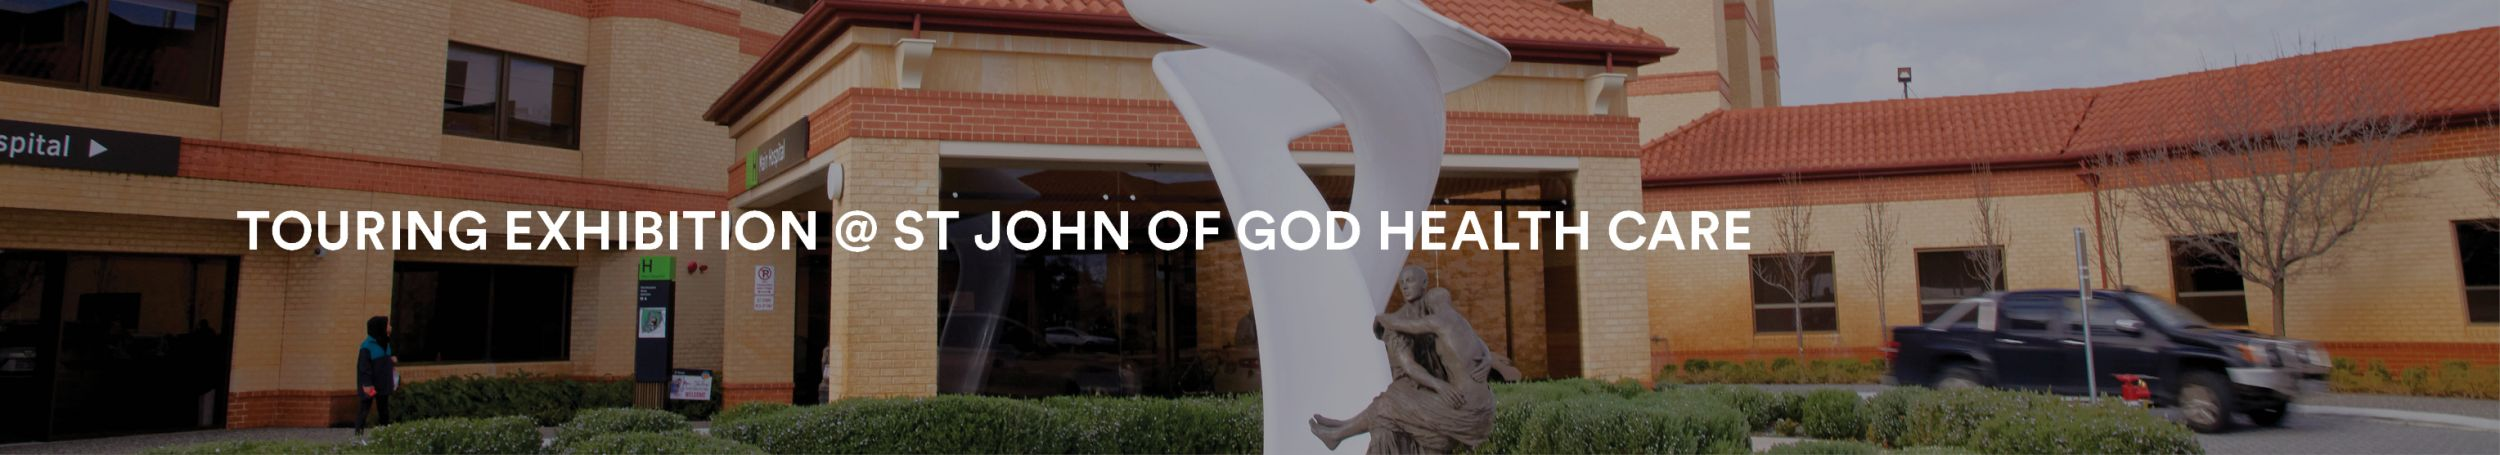 Touring Exhibition - 2020 Main Awards Finalists | St John of God Health Care Murdoch